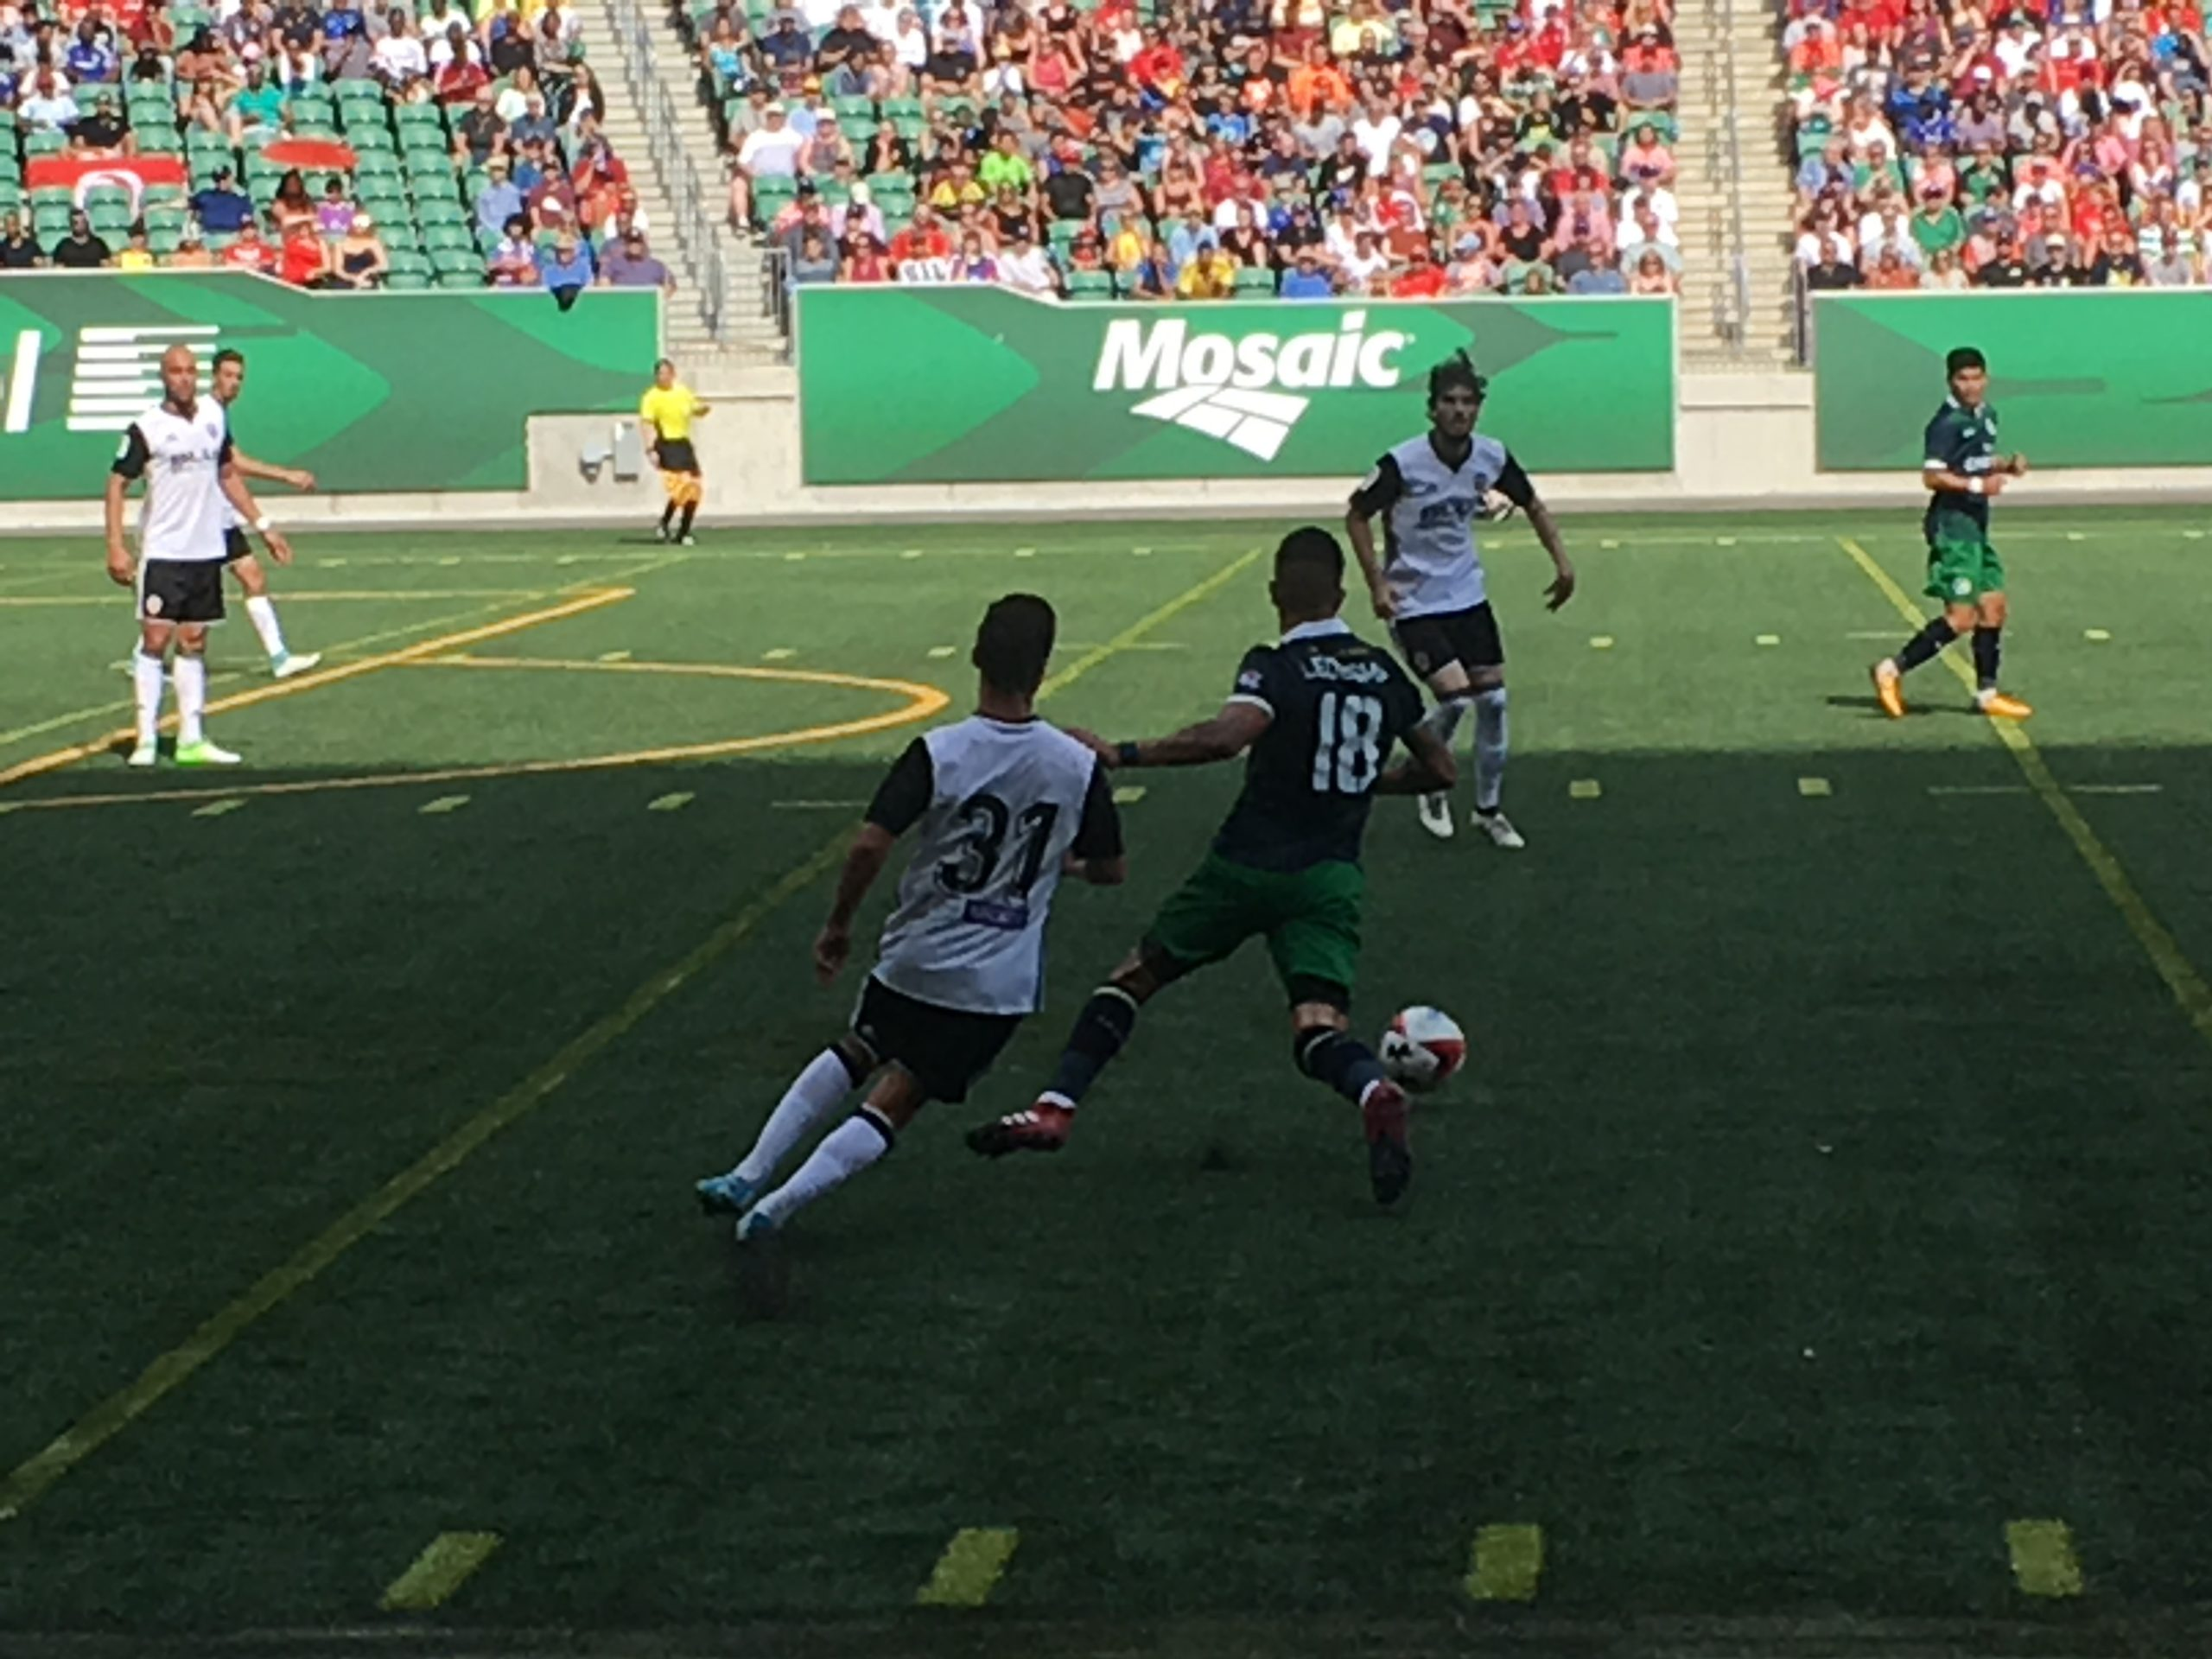 Soccer Day in Saskatchewan nets new fans for the beautiful game